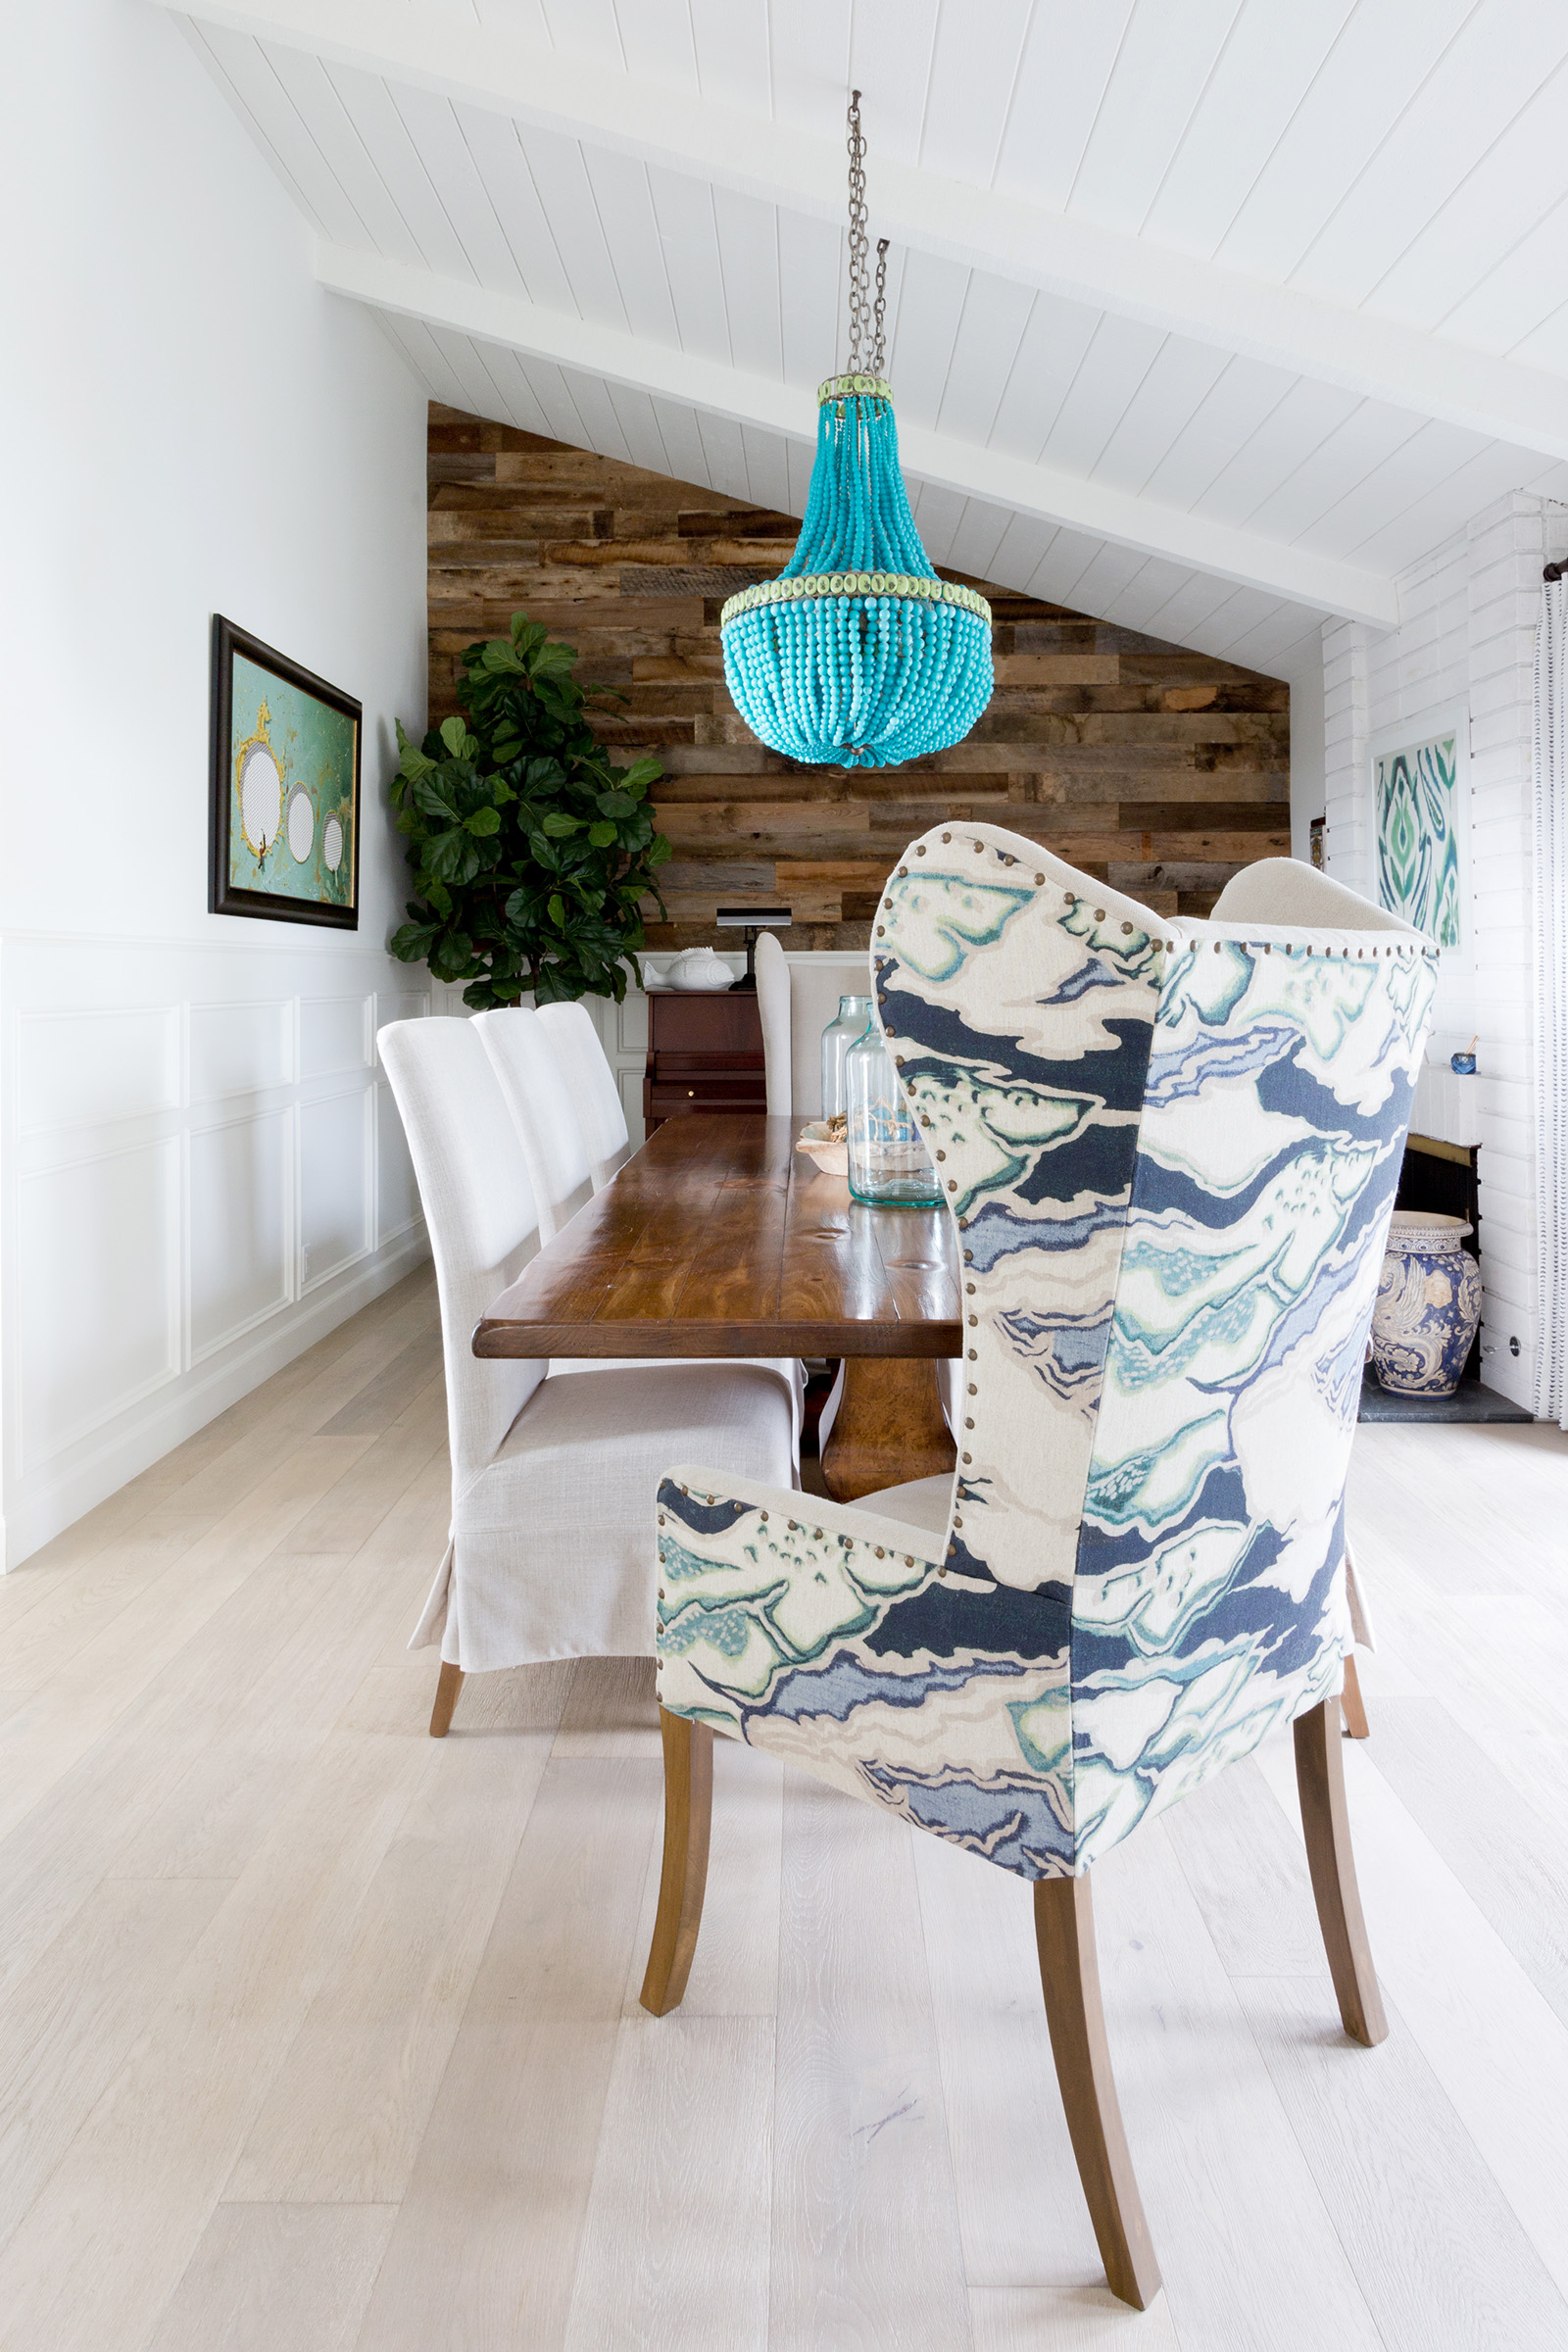 Project Outrigger by Blackband Design